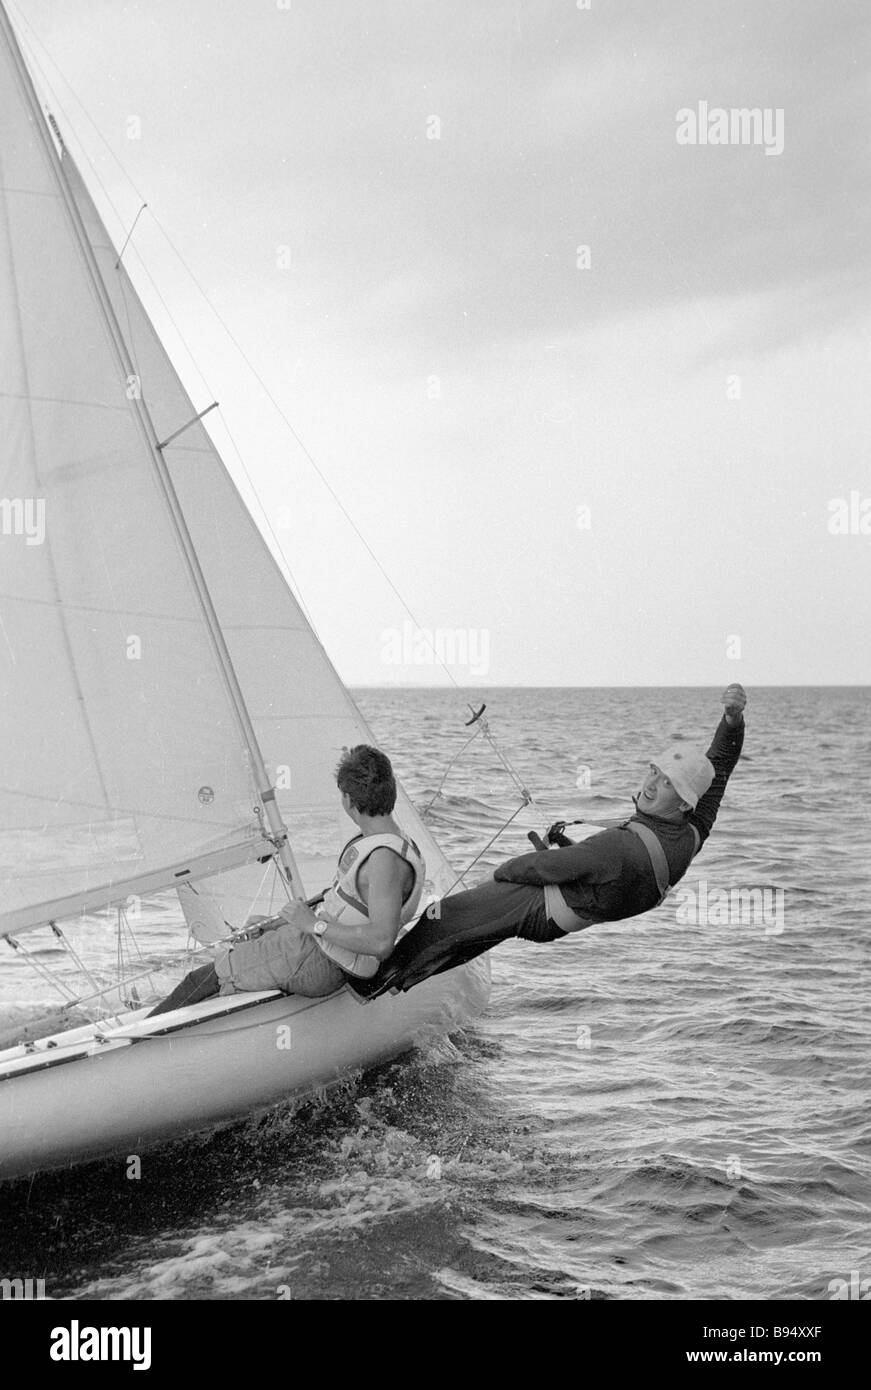 One of the best yachtsmen of a factory yachting club Trubnik - Stock Image